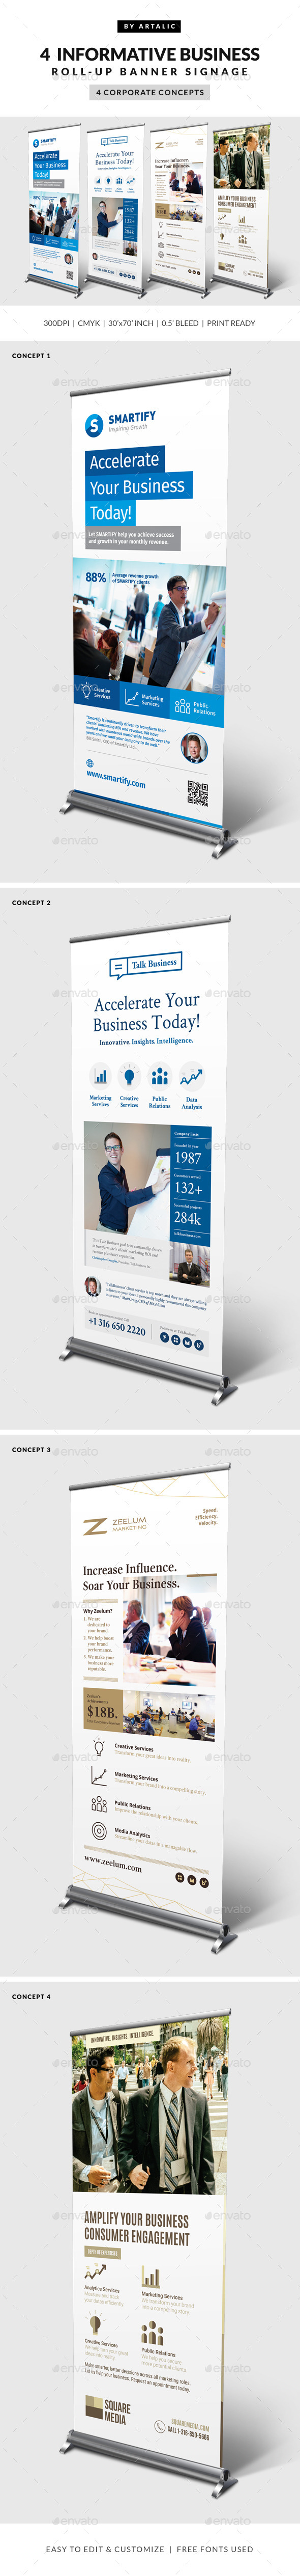 4 Corporate Business Roll-up Banners - Signage Print Templates